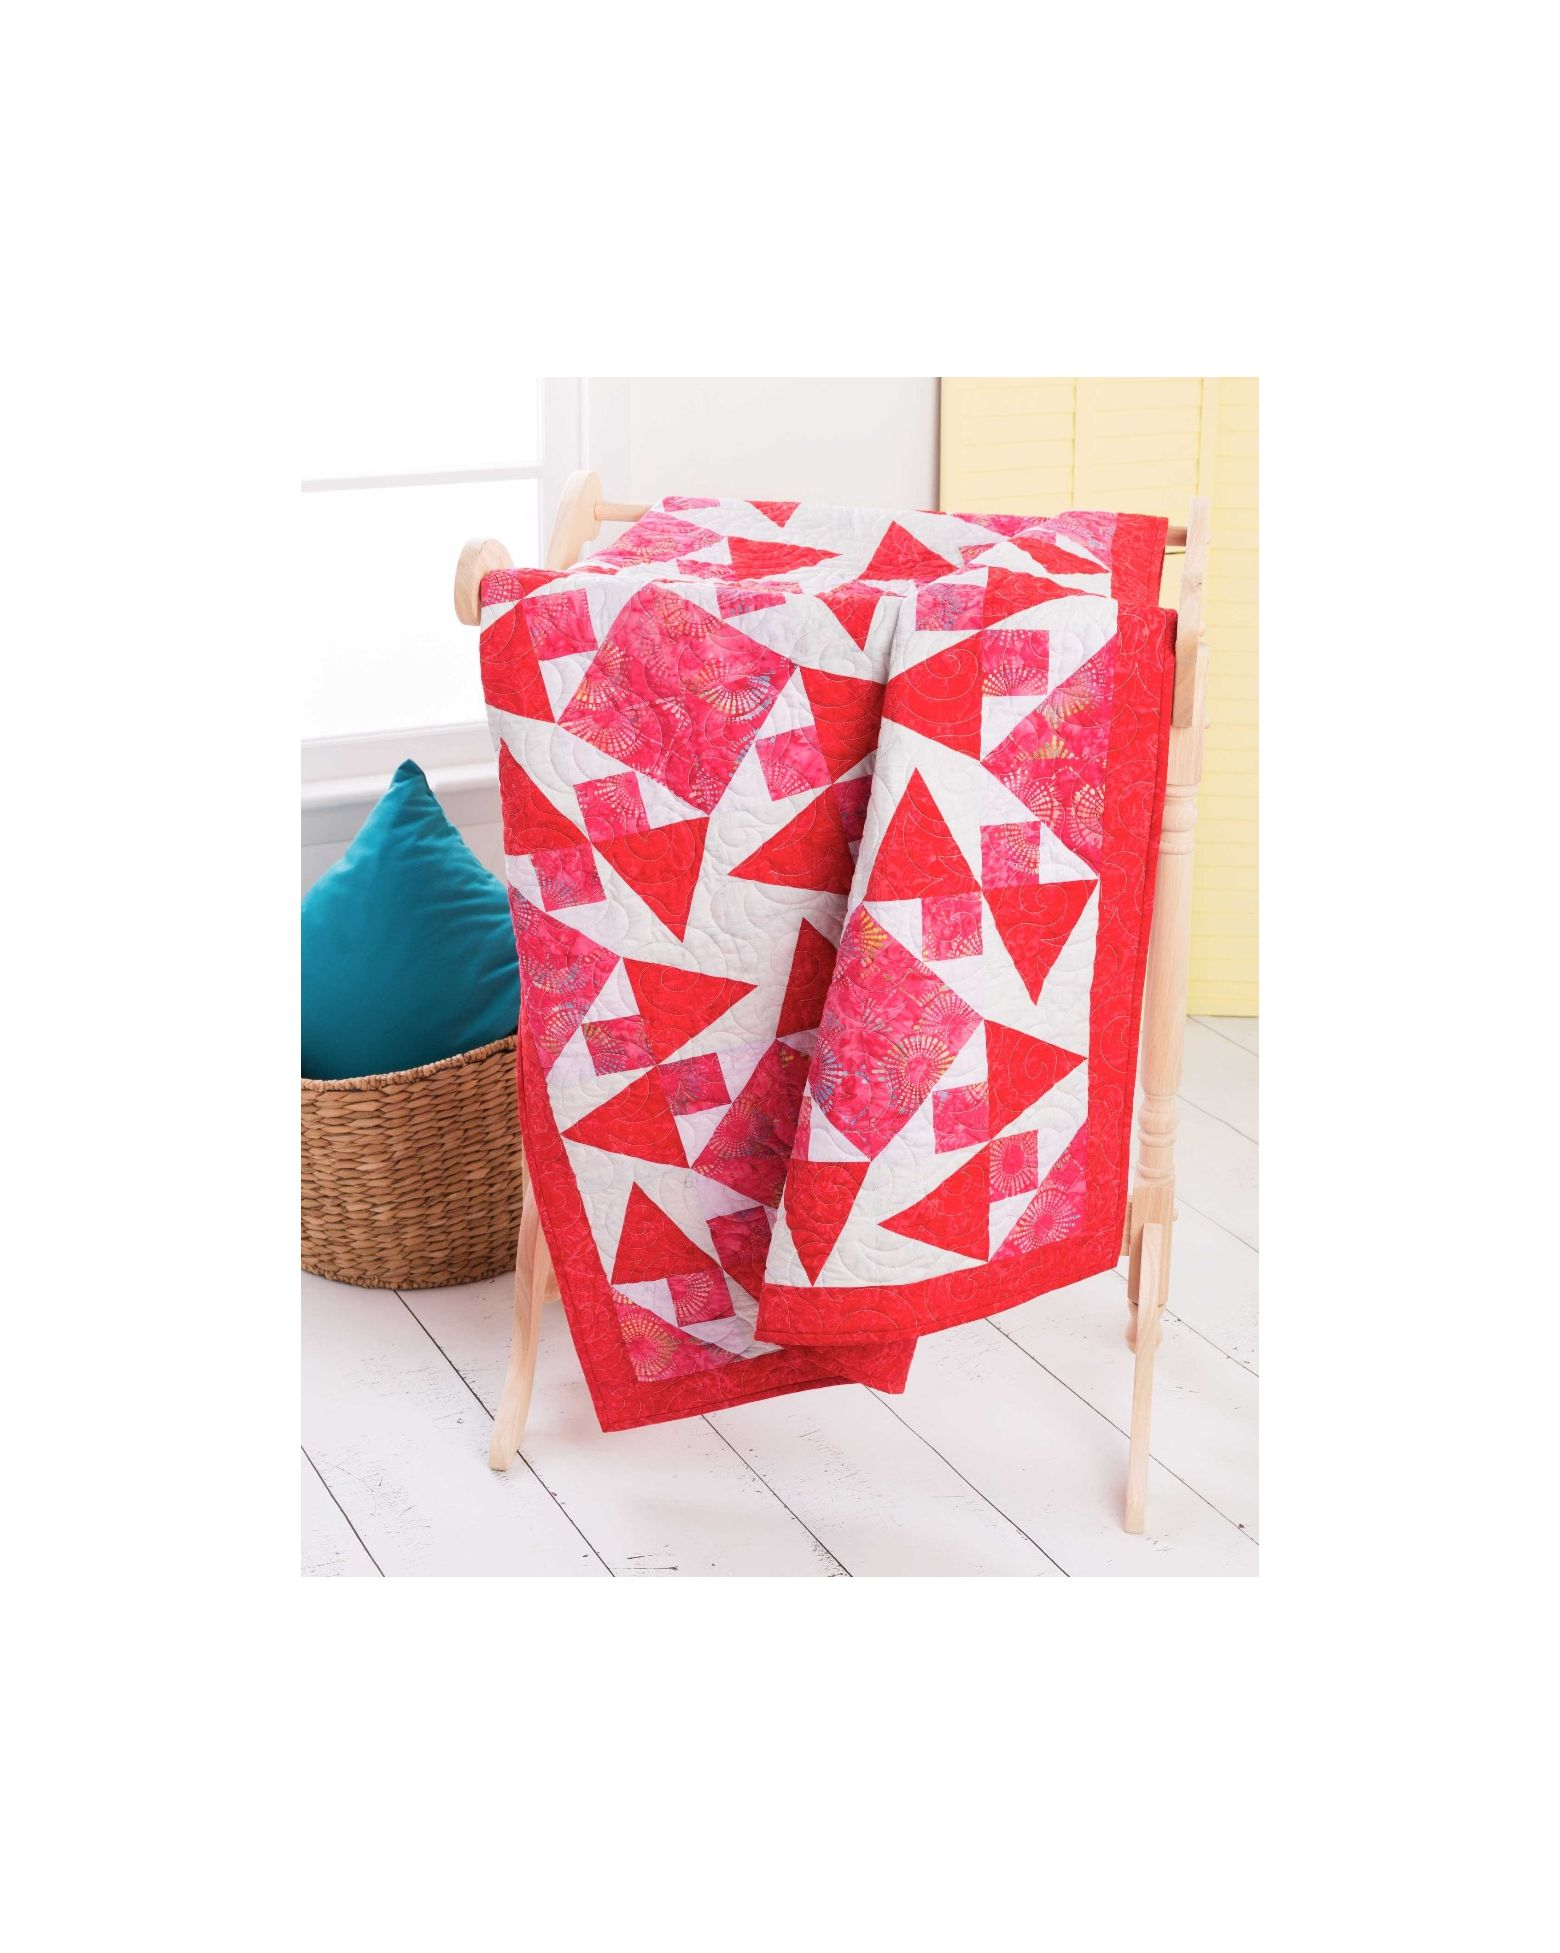 Qube 10 Chuckle Strawberry Quilt Pattern